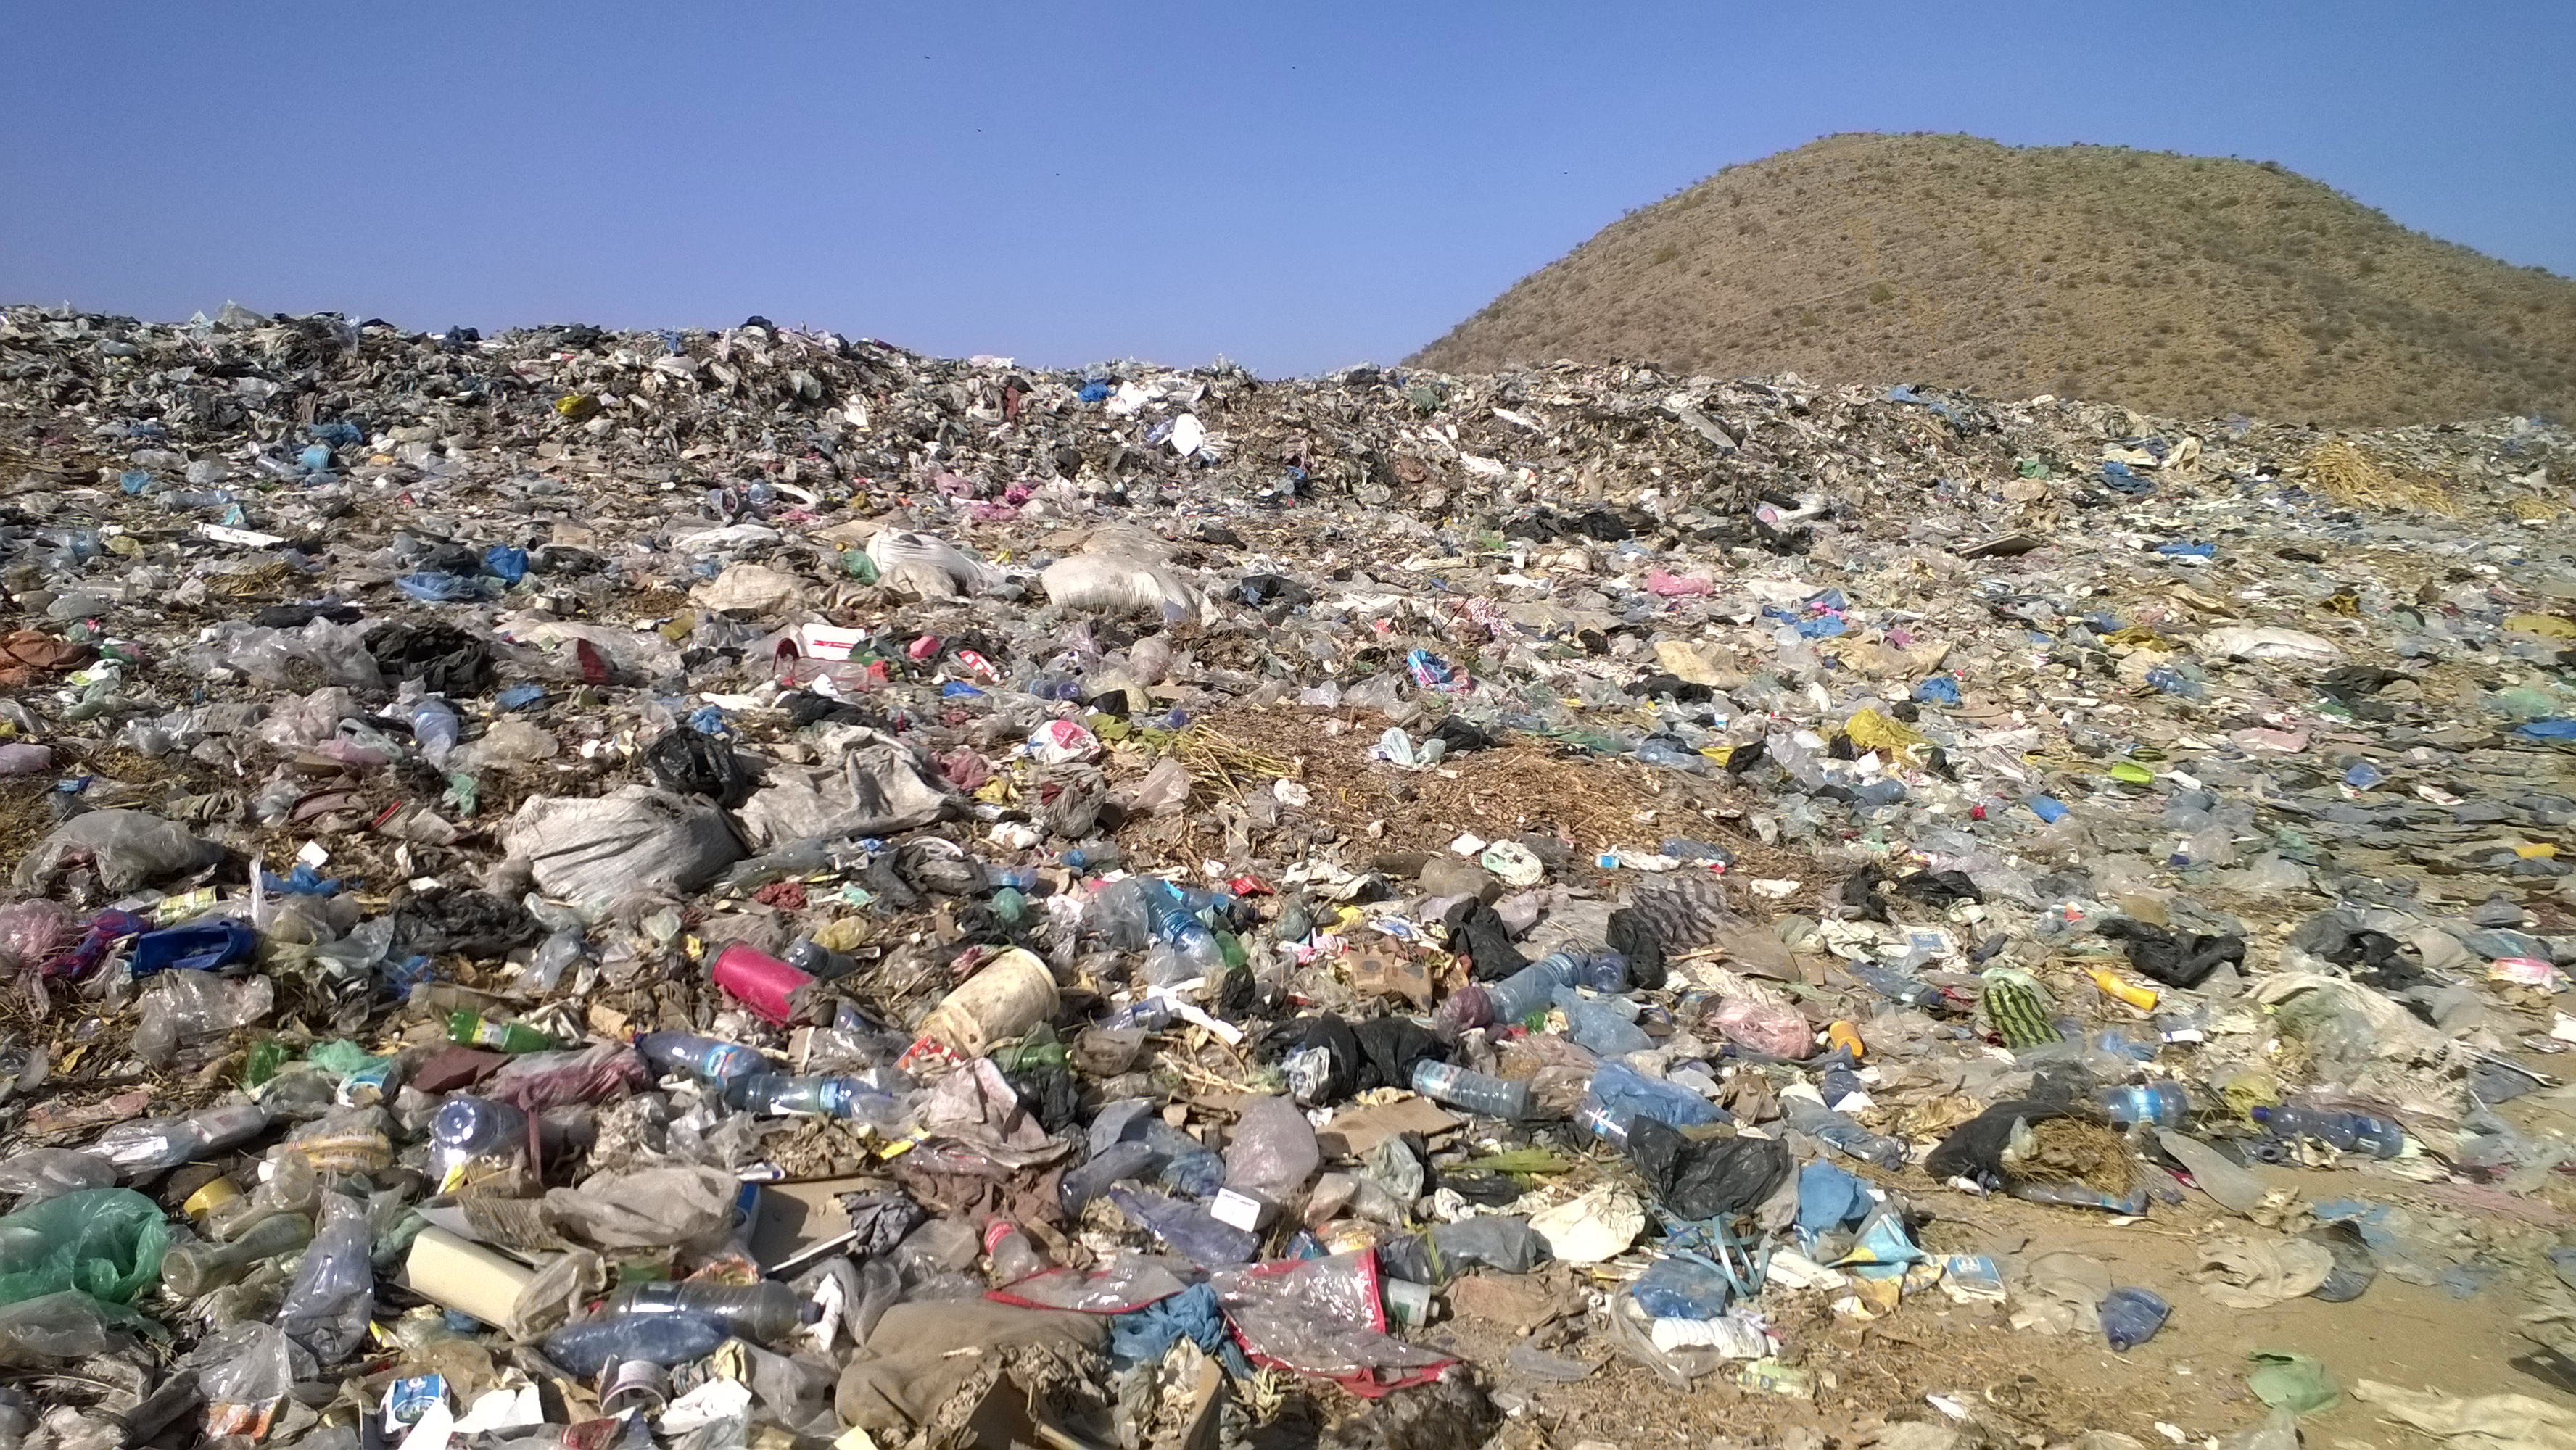 solid waste in livingstone city Solid waste management (swm) continues to be a major concern in zambia as such, the  effectiveness of the mzch campaign in the city of livingstone.